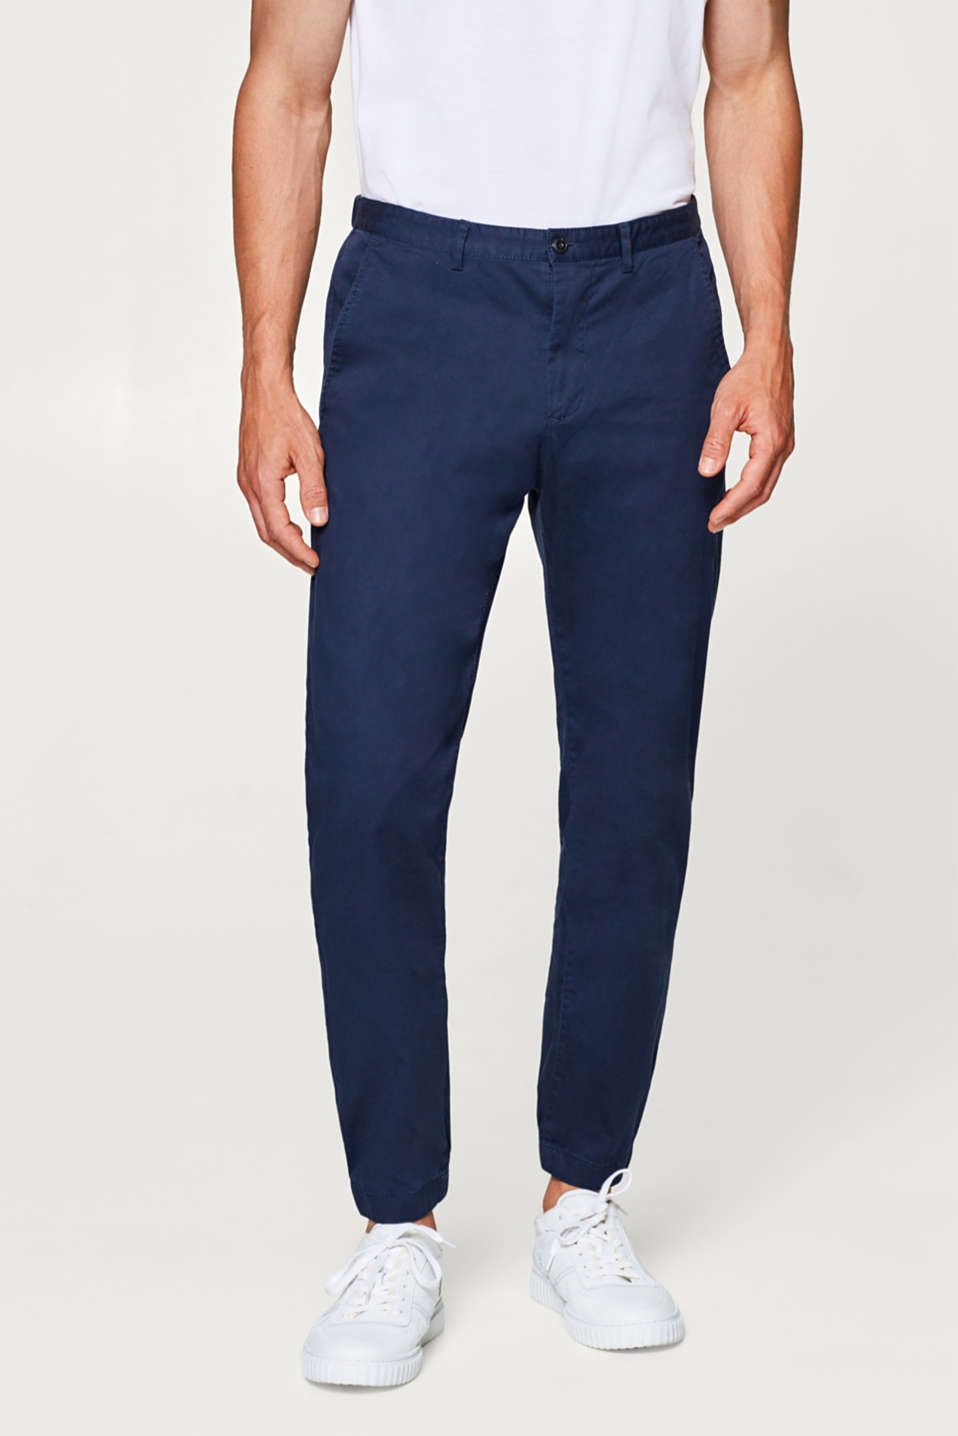 Esprit - Jogging bottoms in smooth stretch cotton